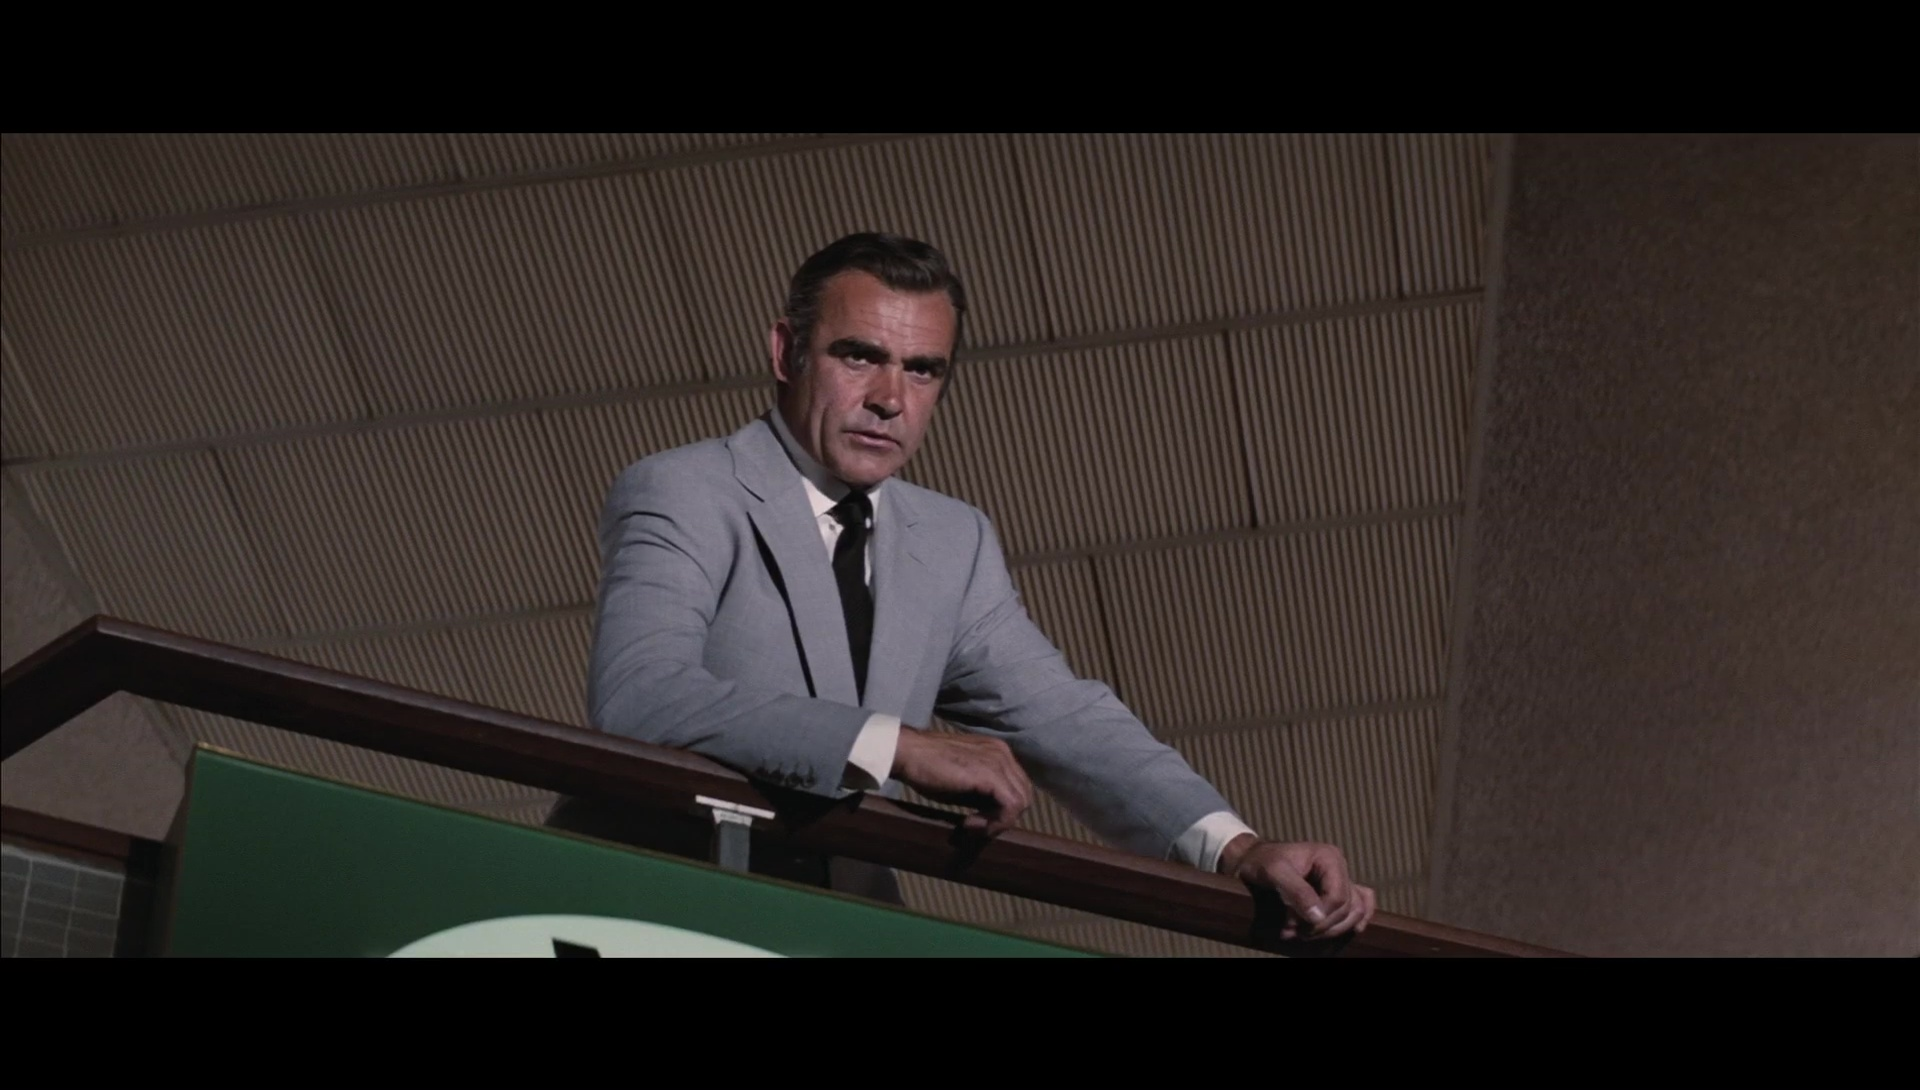 007 Los Diamantes Son Eternos 1080p Lat-Cast-Ing 5.1 (1971)